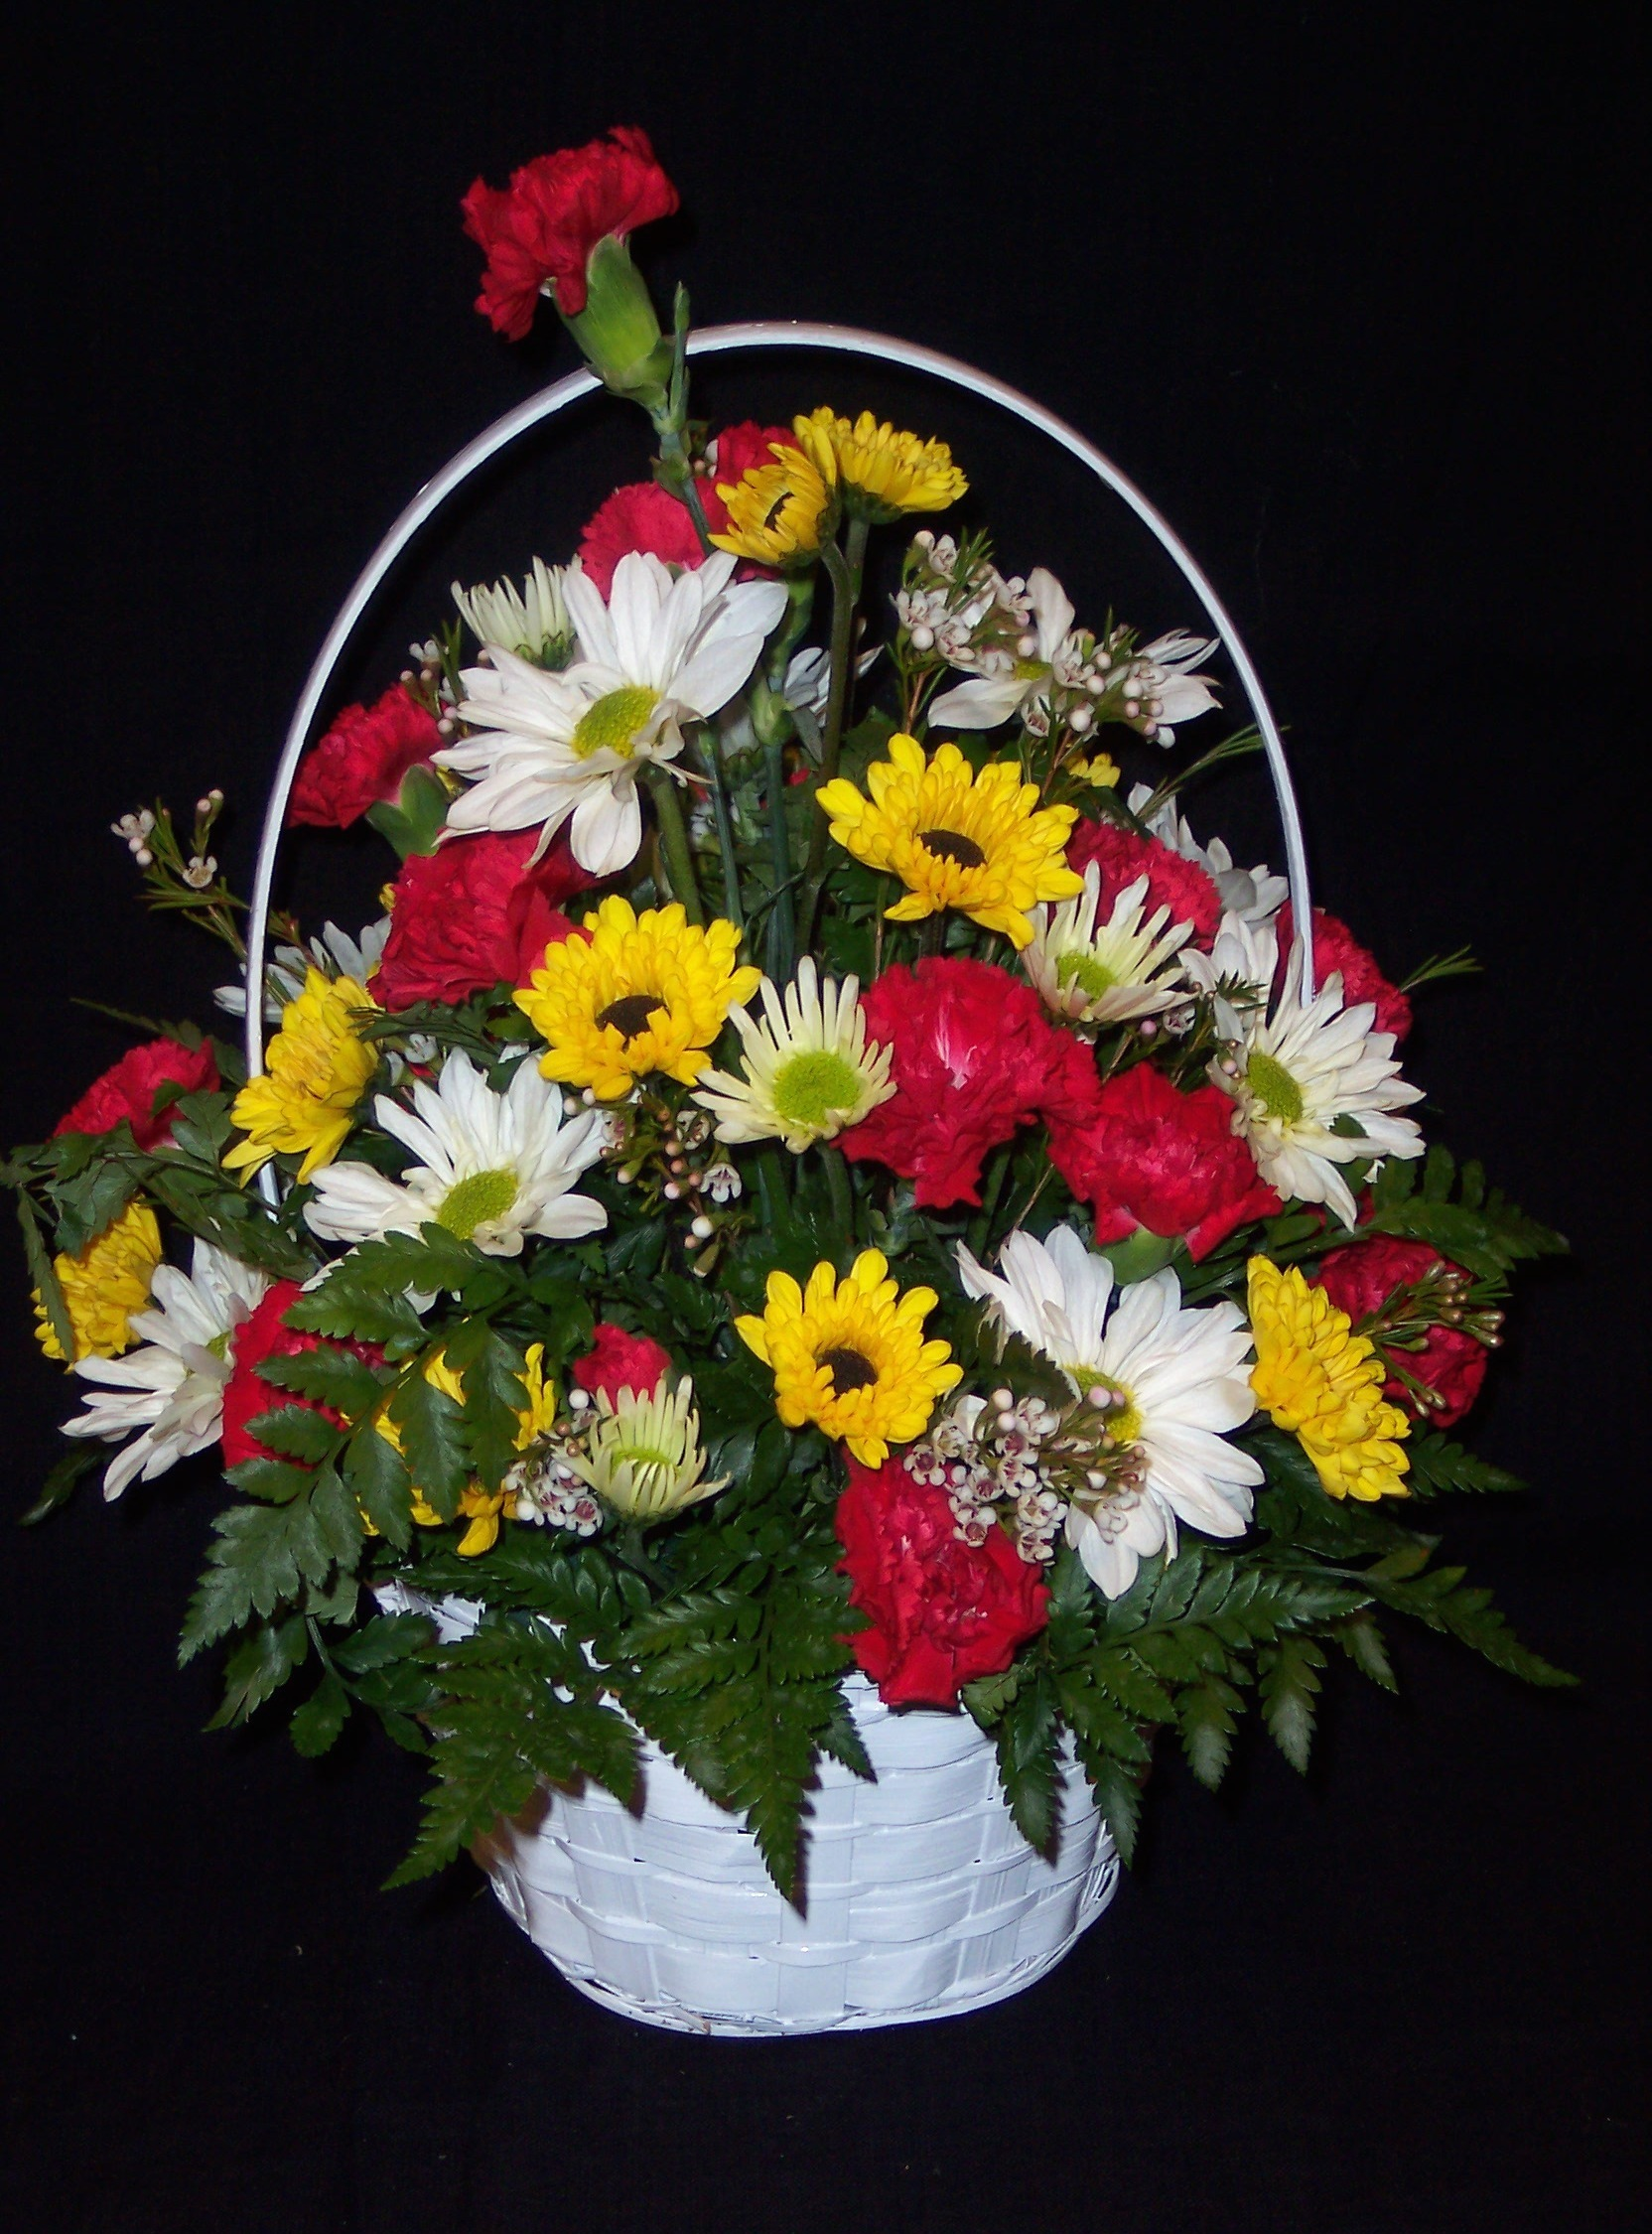 Premium (large) Seasonal Arrangement in Basket